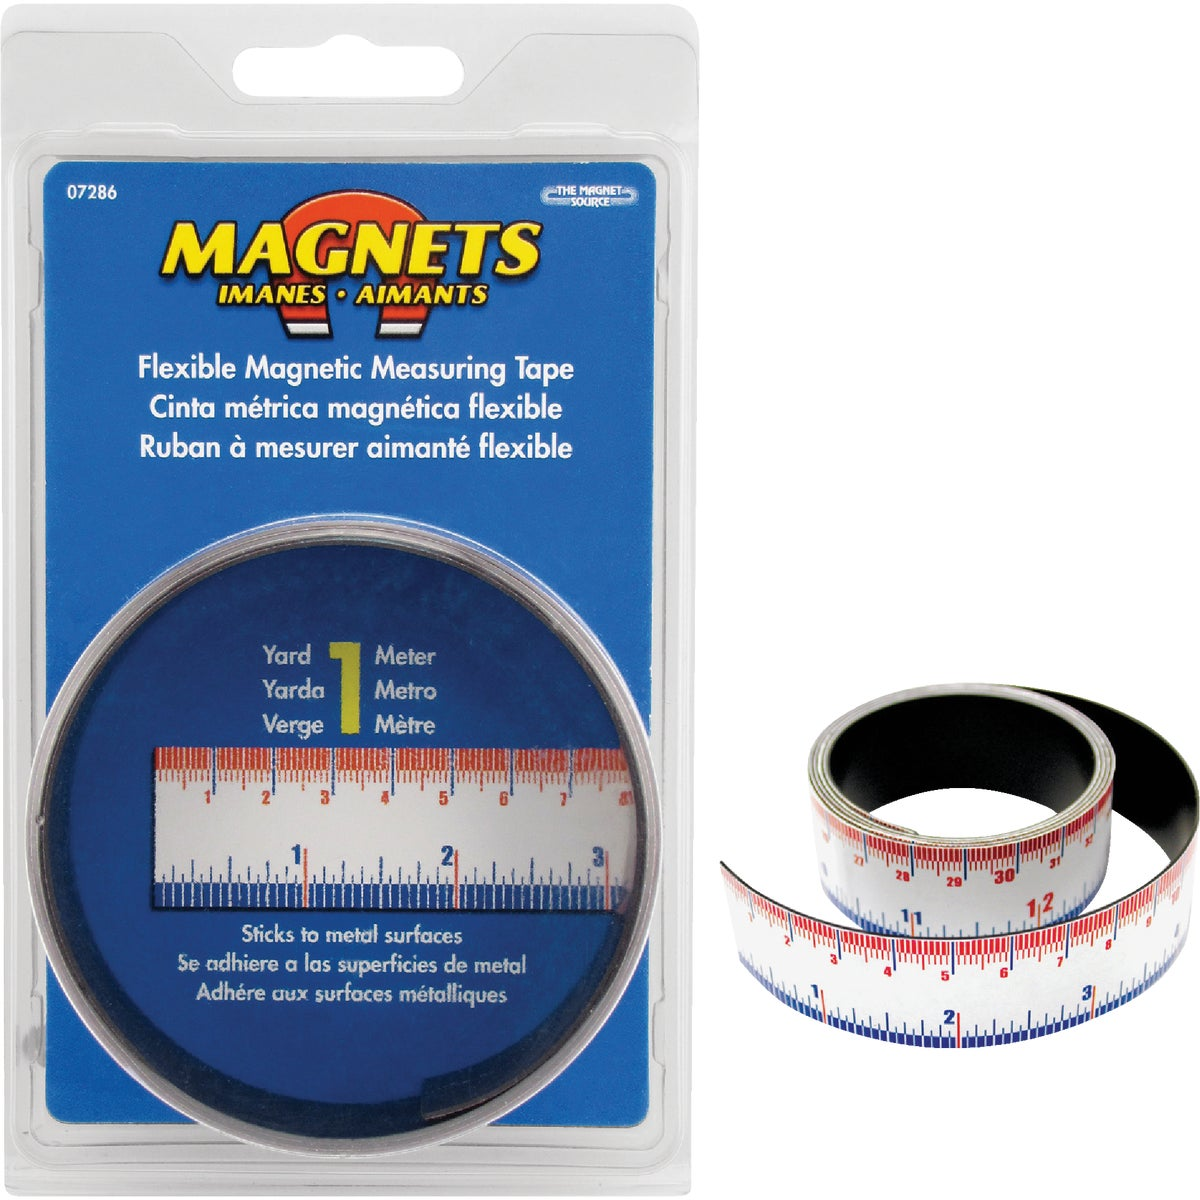 FLEX MAGNETIC TAPE RULE